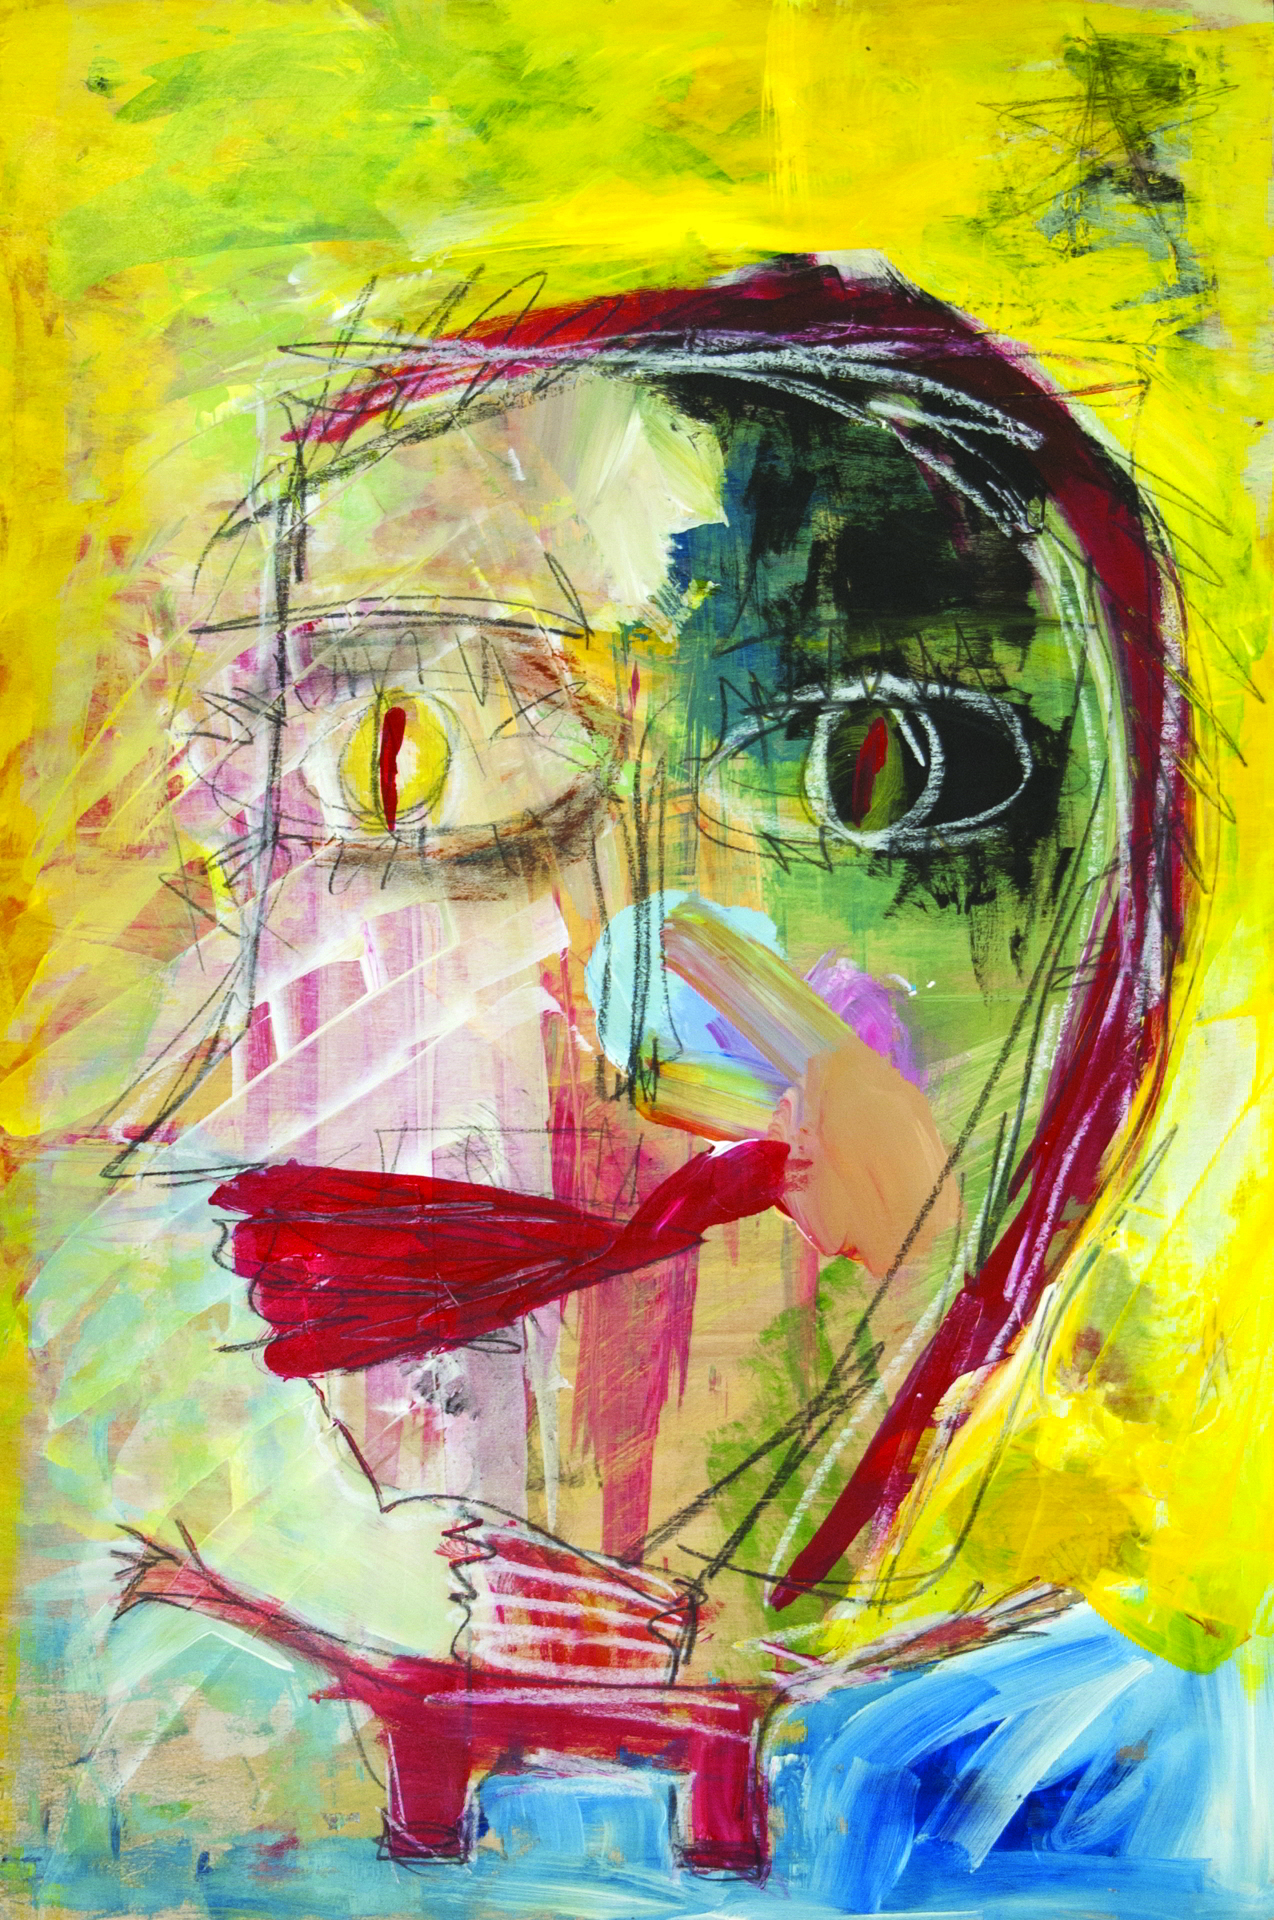 Barbara Martin, Le Petit Garcon, 2016, Acrylic, oil pastel and pencil on cradled panel, 24x16x1.75 inches, $400